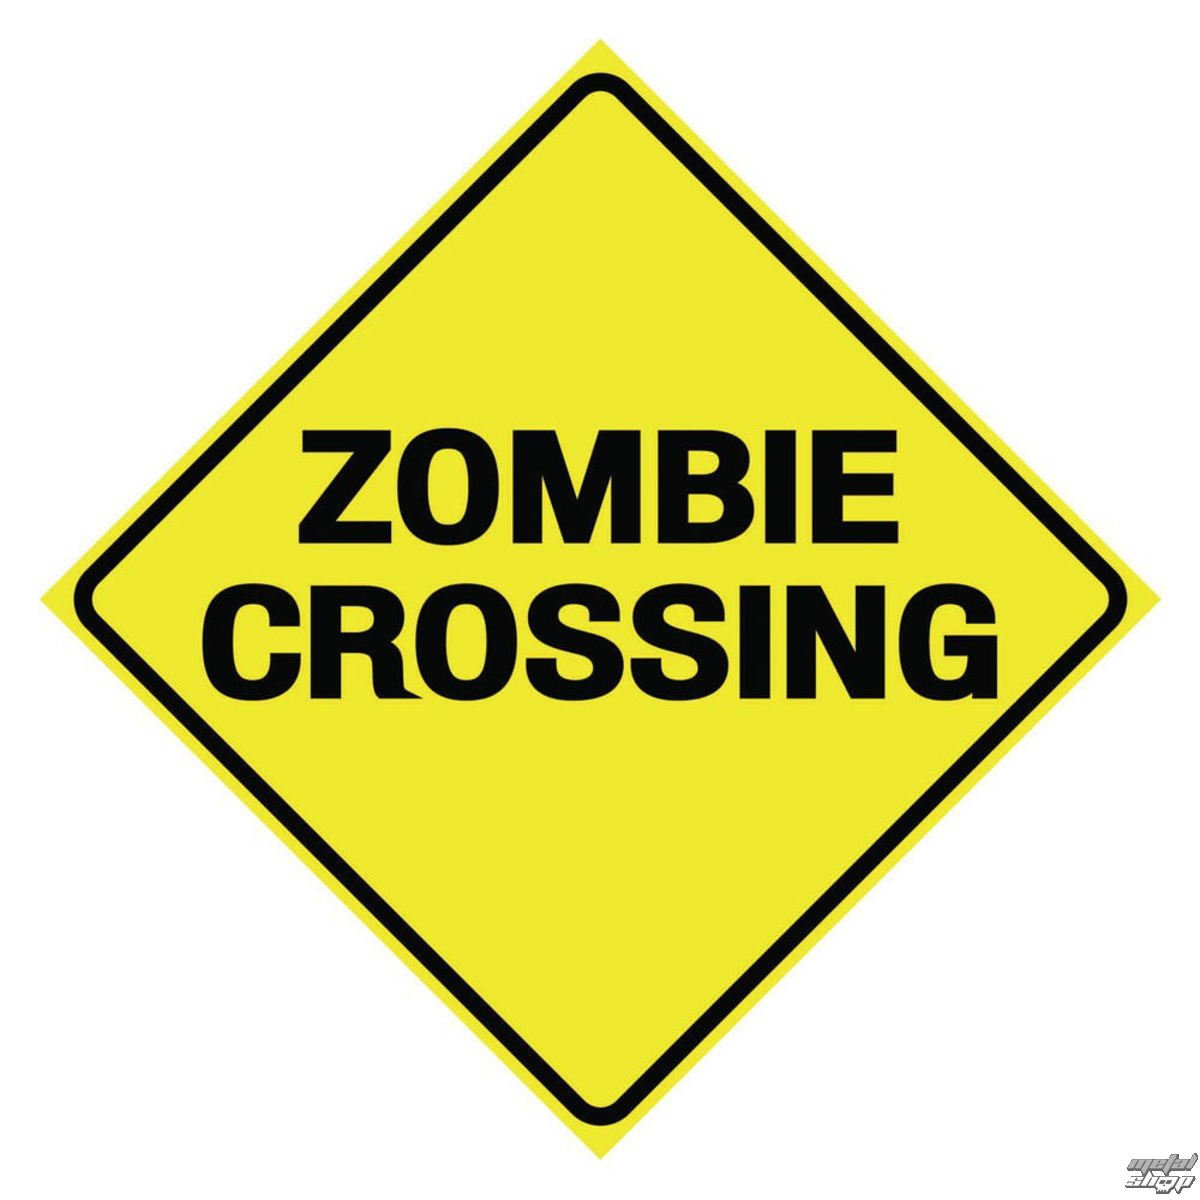 cedule Zombie Crossing